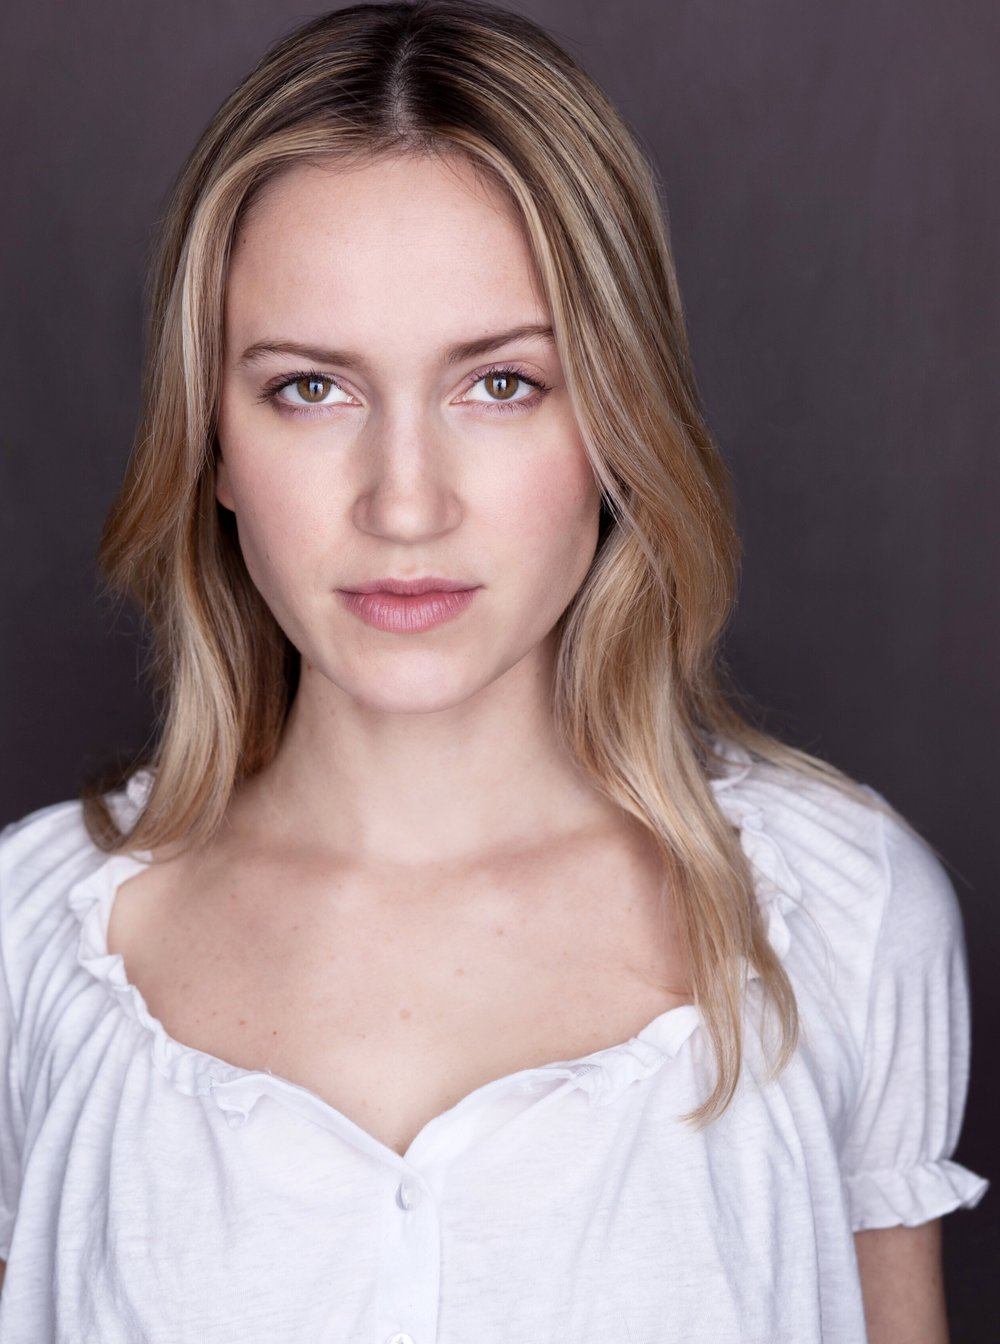 ELLEN TOLAND - It's officially a wrap! HUGE congrats to client Ellen Toland as she just wrapped filming the lead role of '[sic]' in the upcoming feature film [sic]. Can't wait to see where this film goes!